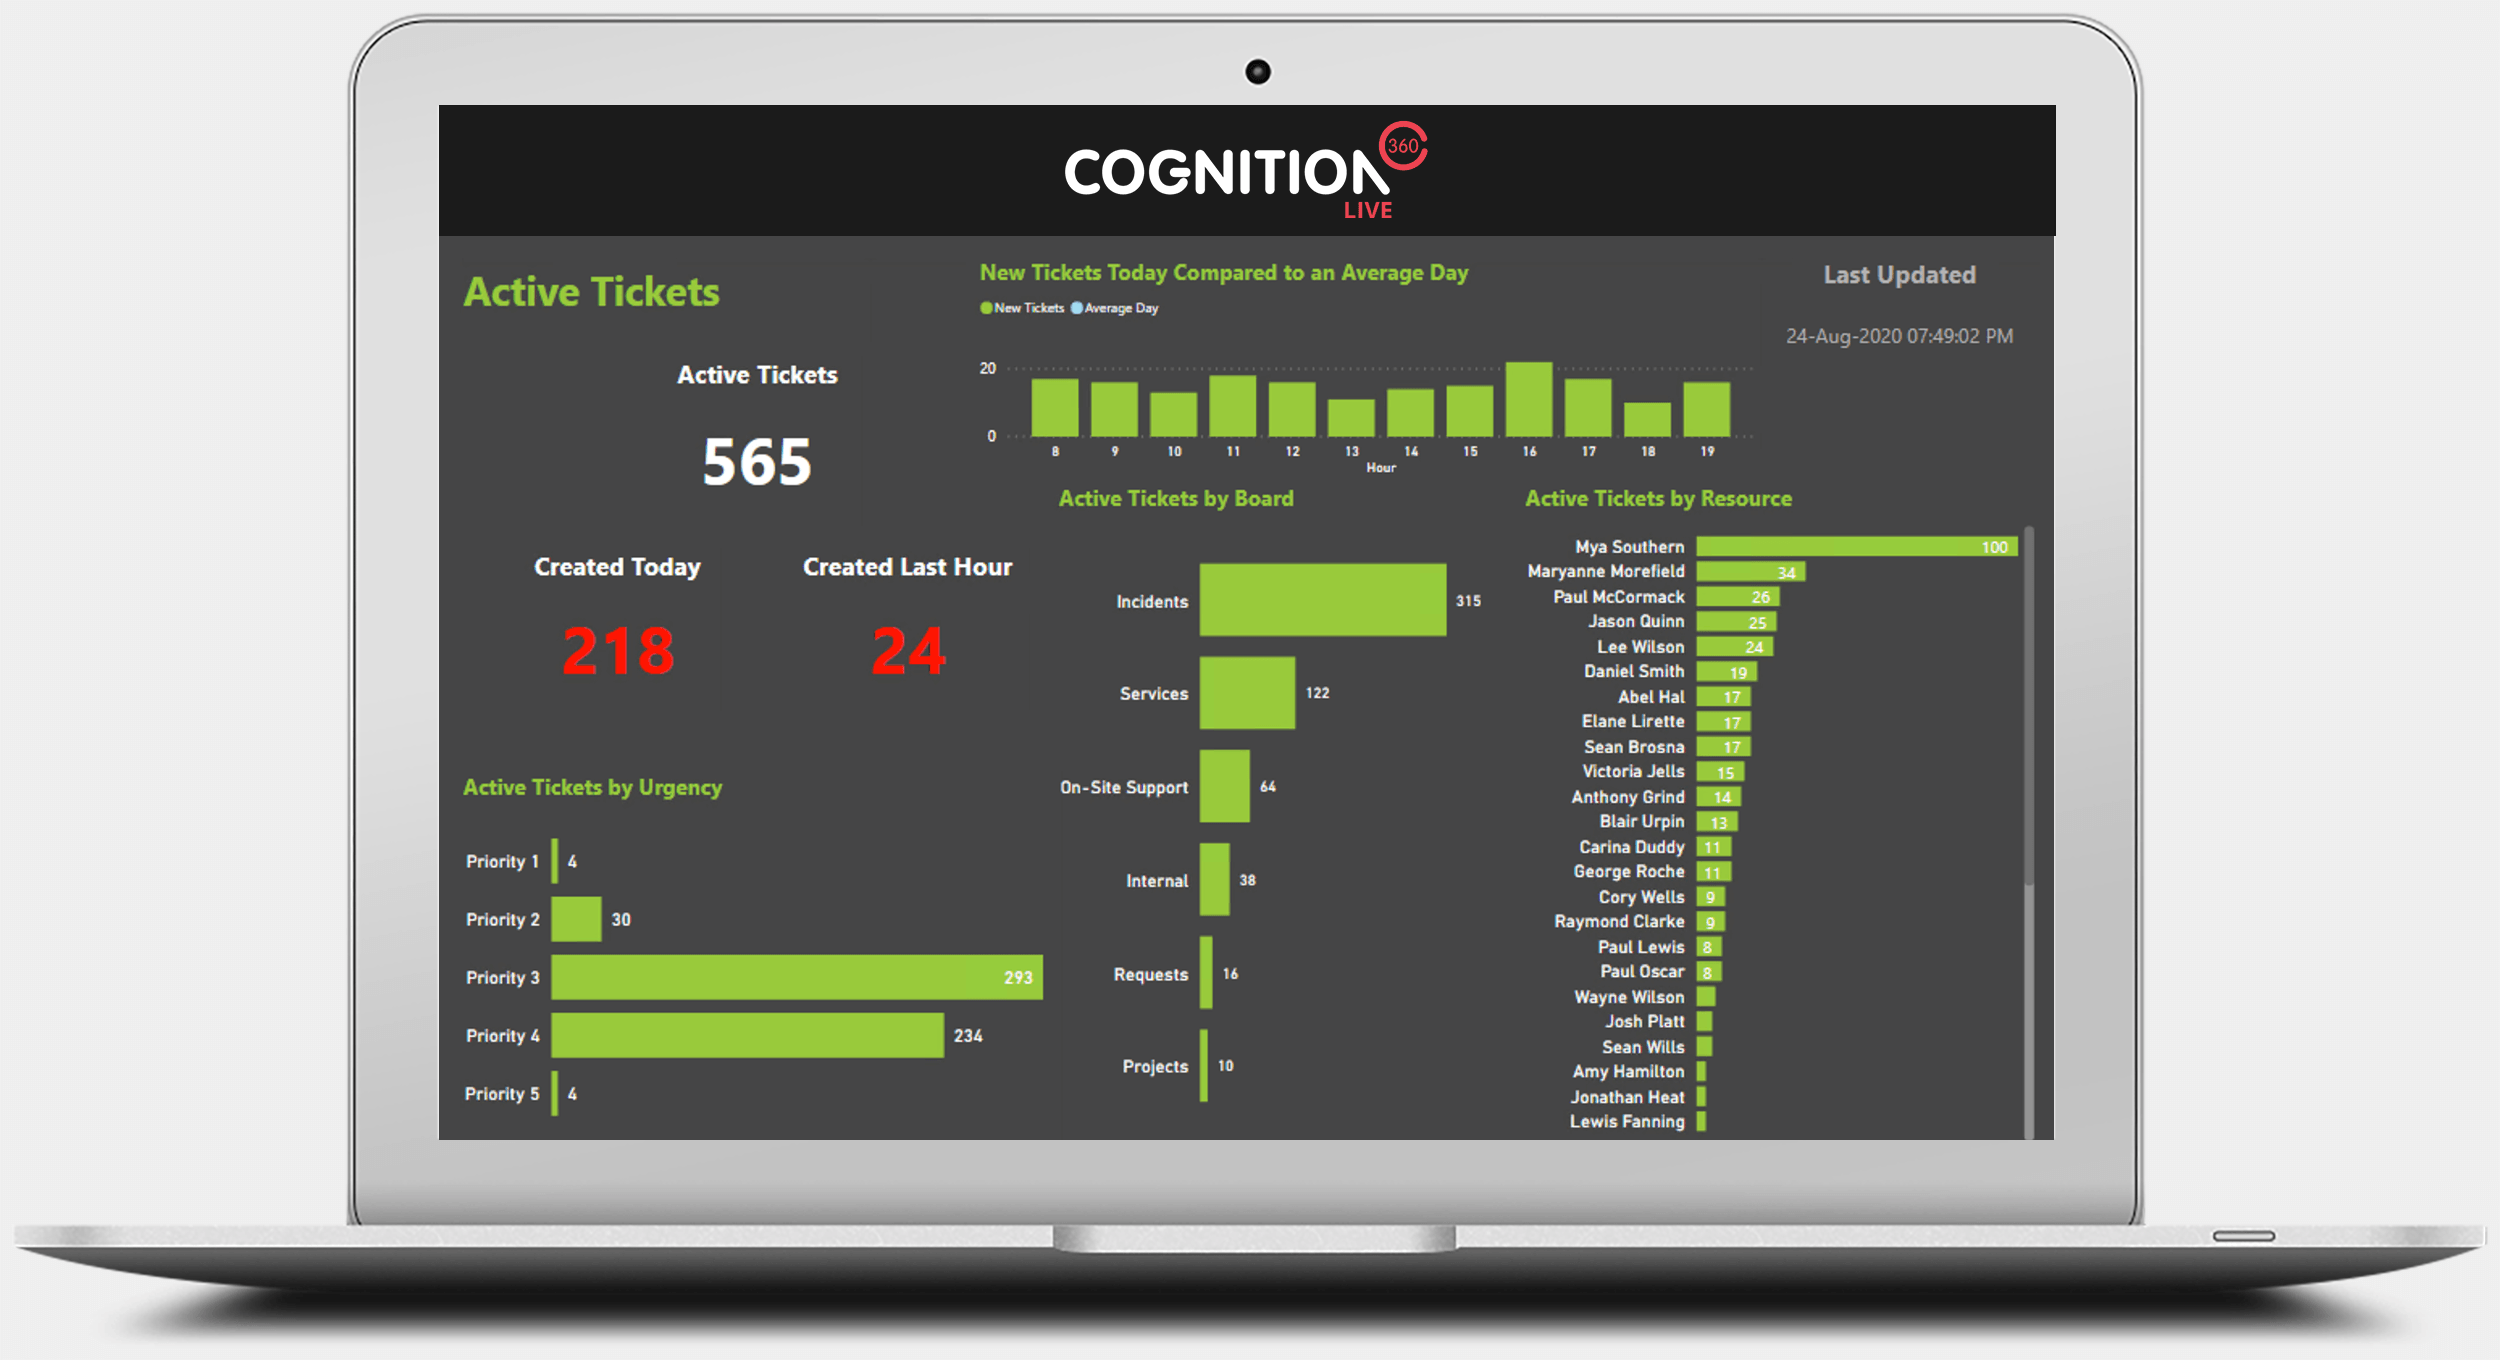 Cognition360 LIVE Active Tickets Summary screen